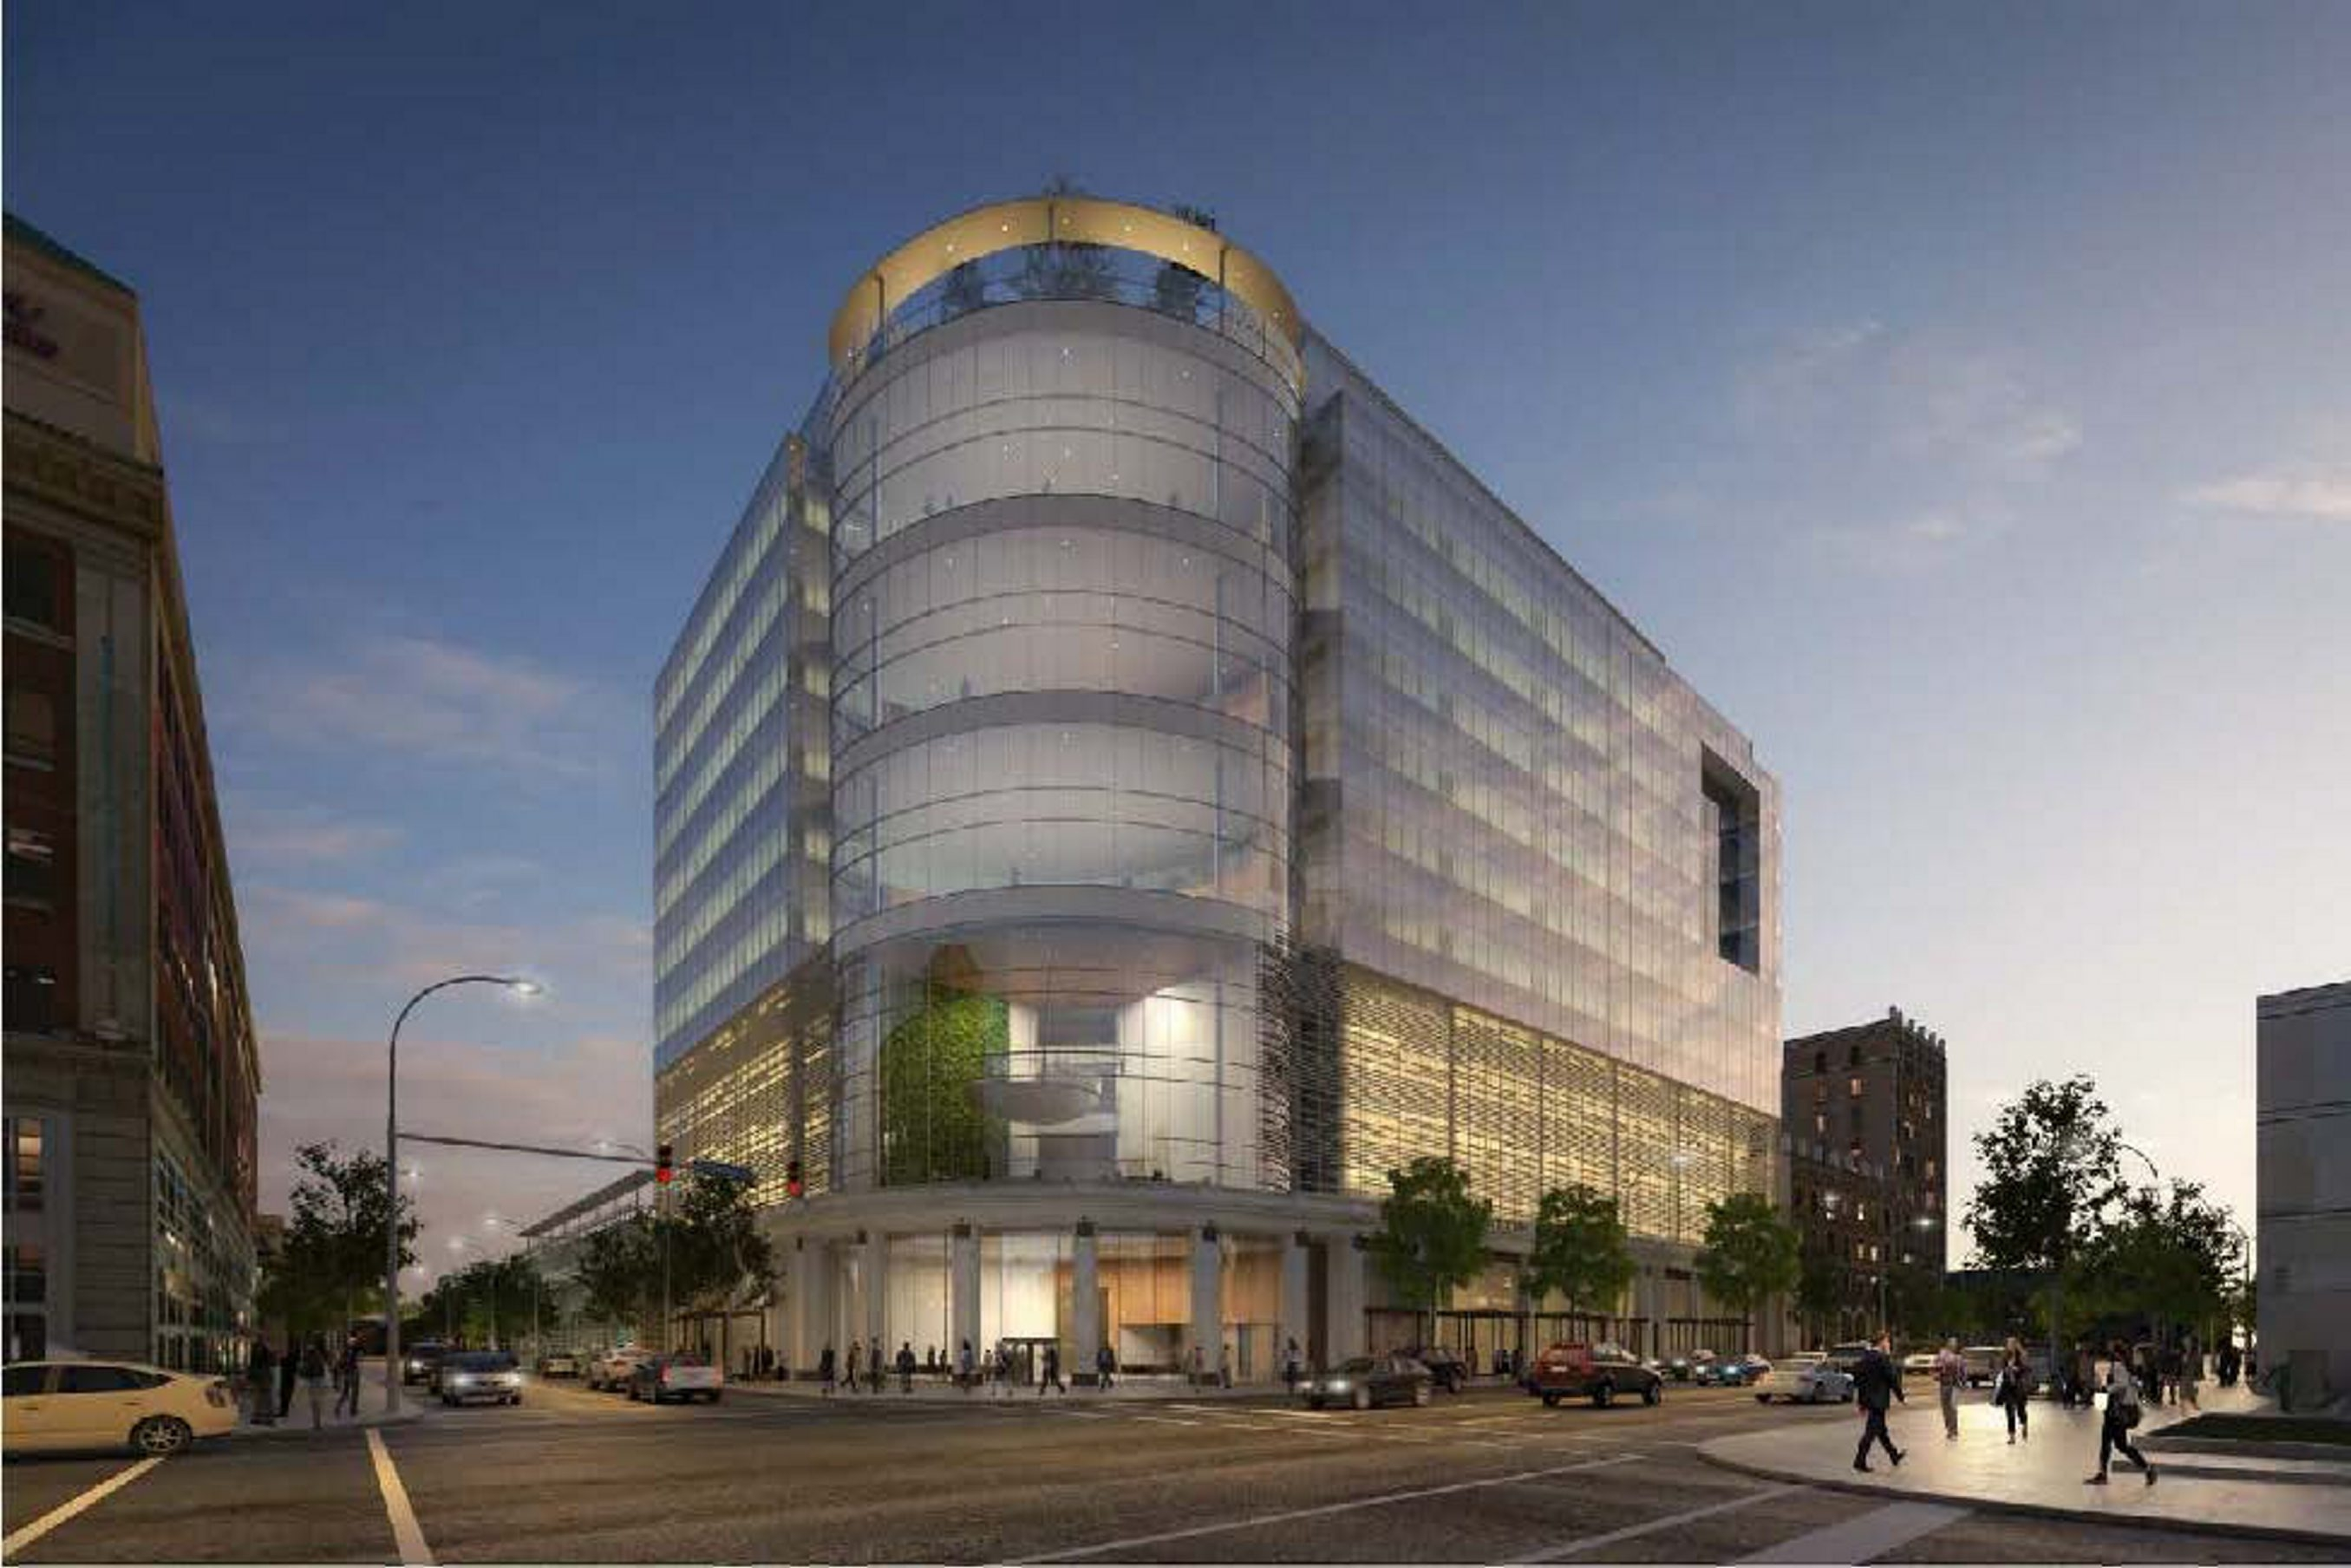 Uniland is building this new headquarters for Delaware North Cos. at 250 Delaware Ave. at Chippewa Street.